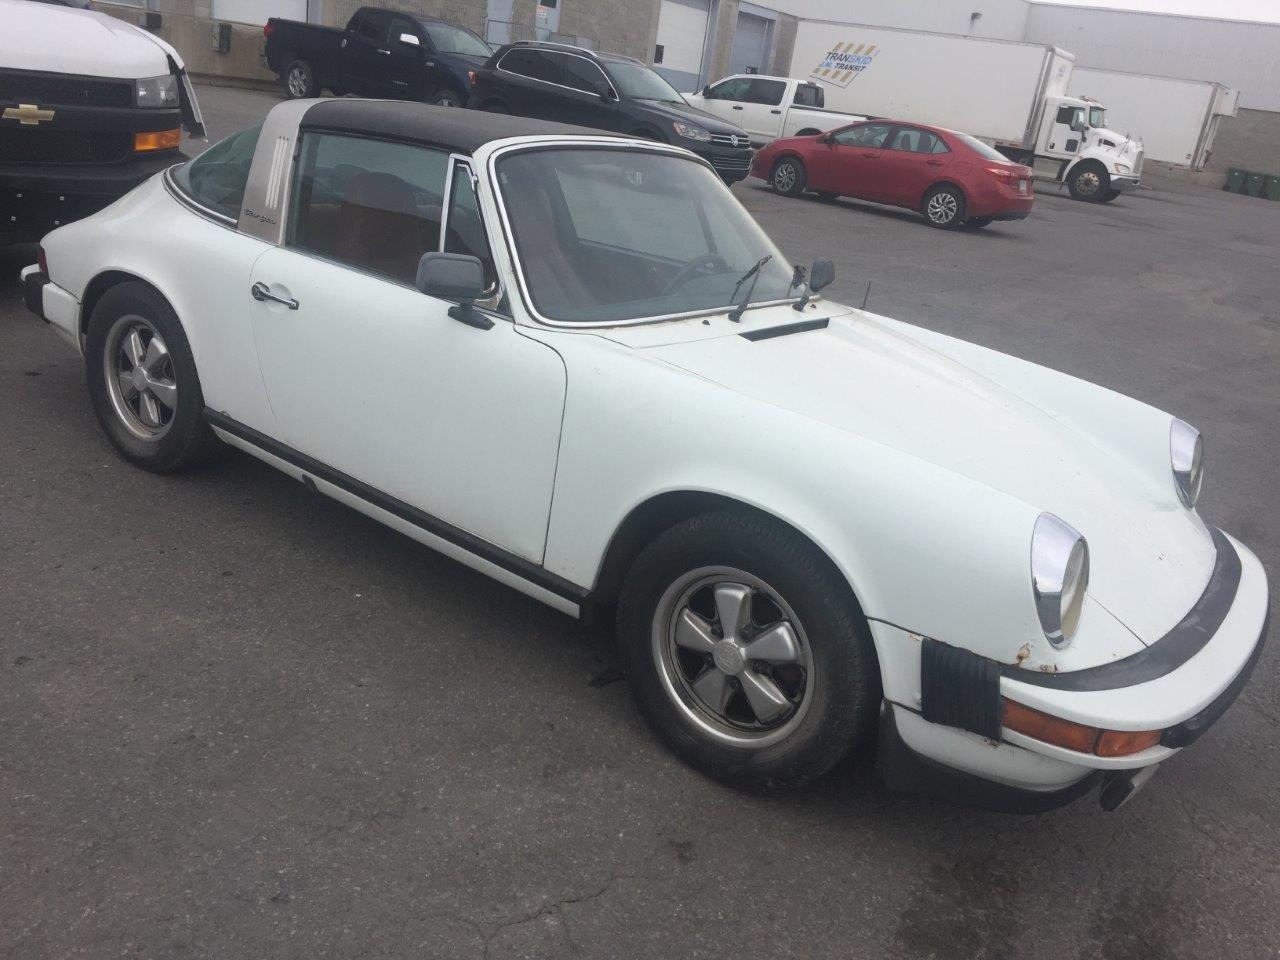 Porsche 911 1974 Targa - MBB Collection